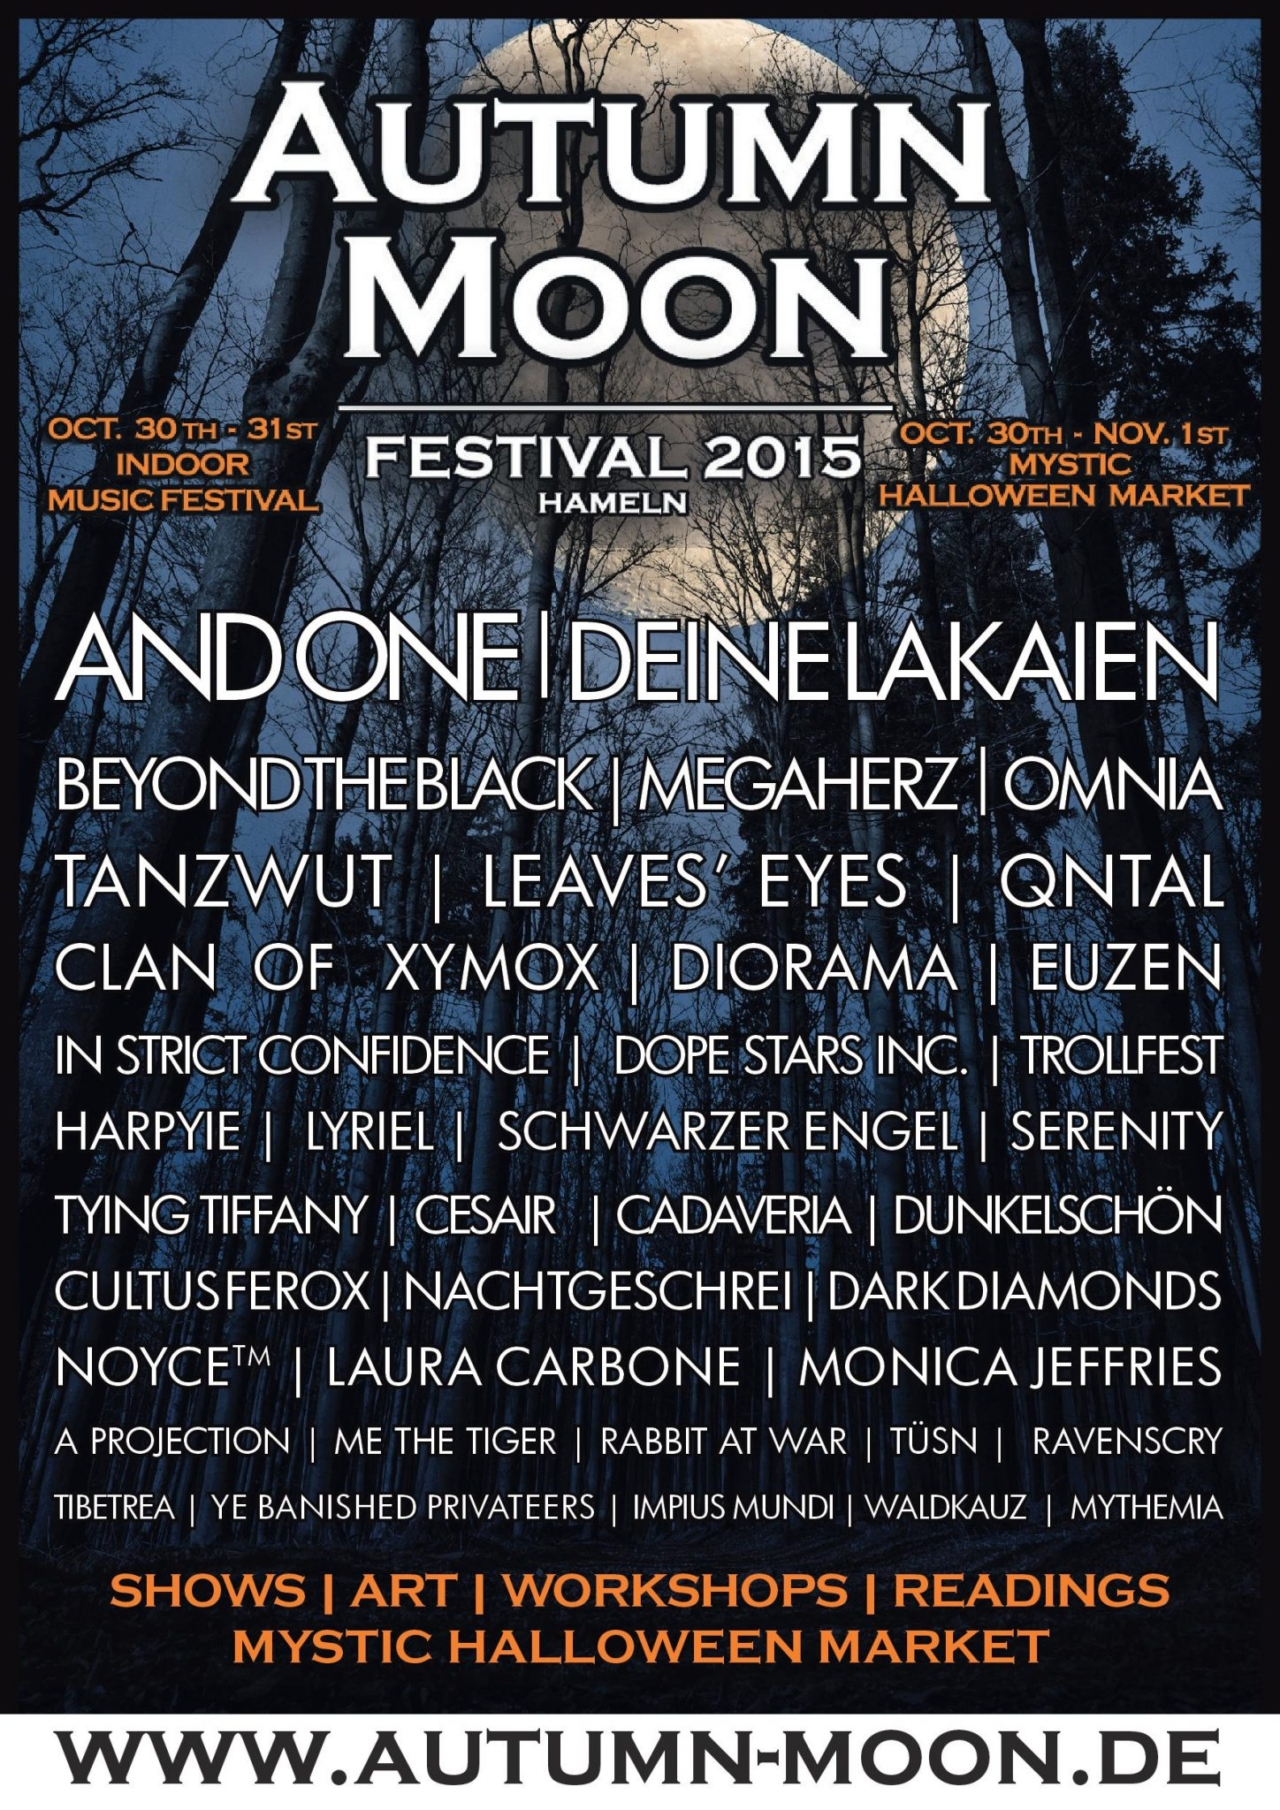 AUTUMN MOON FESTIVAL 2015: Line-Up und Infos